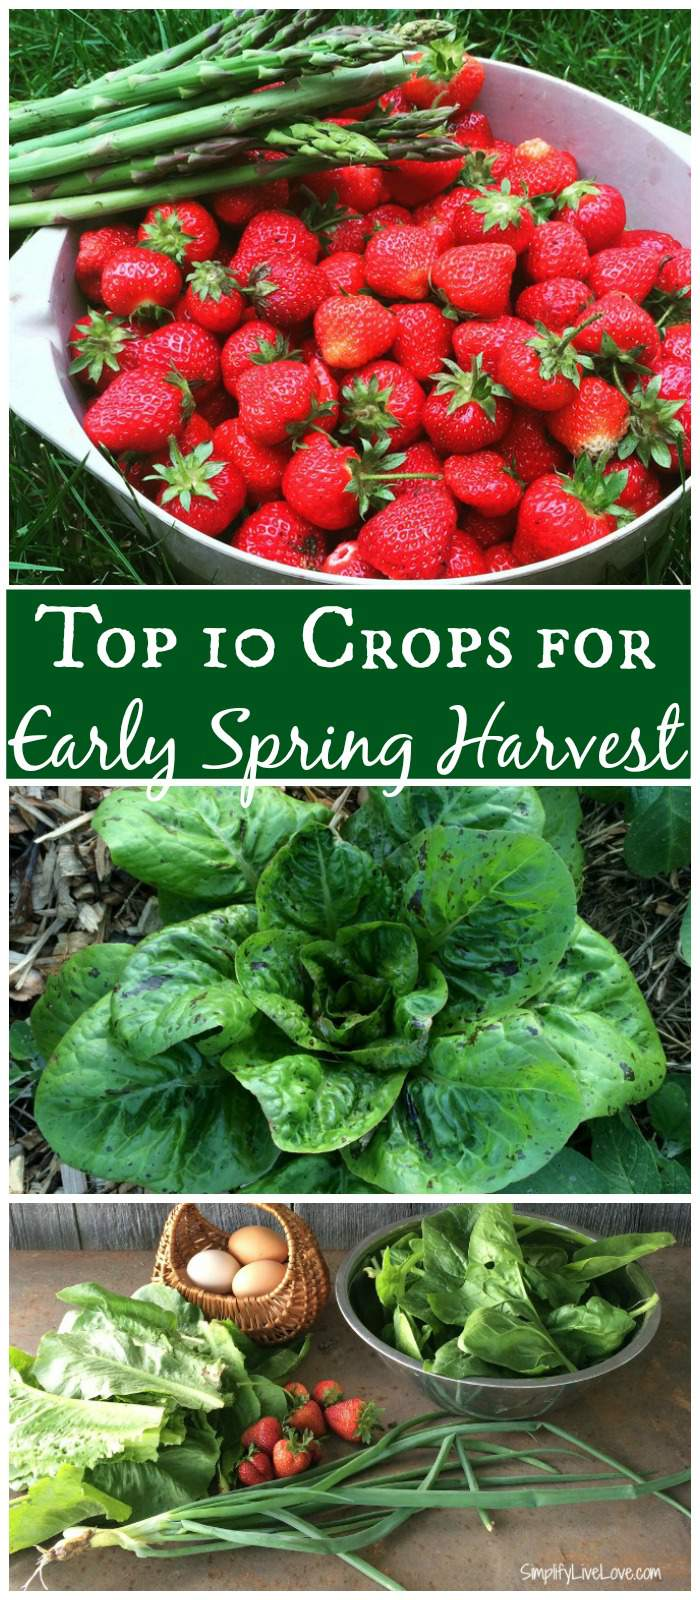 Top 10 Plants for Early Spring Harvest